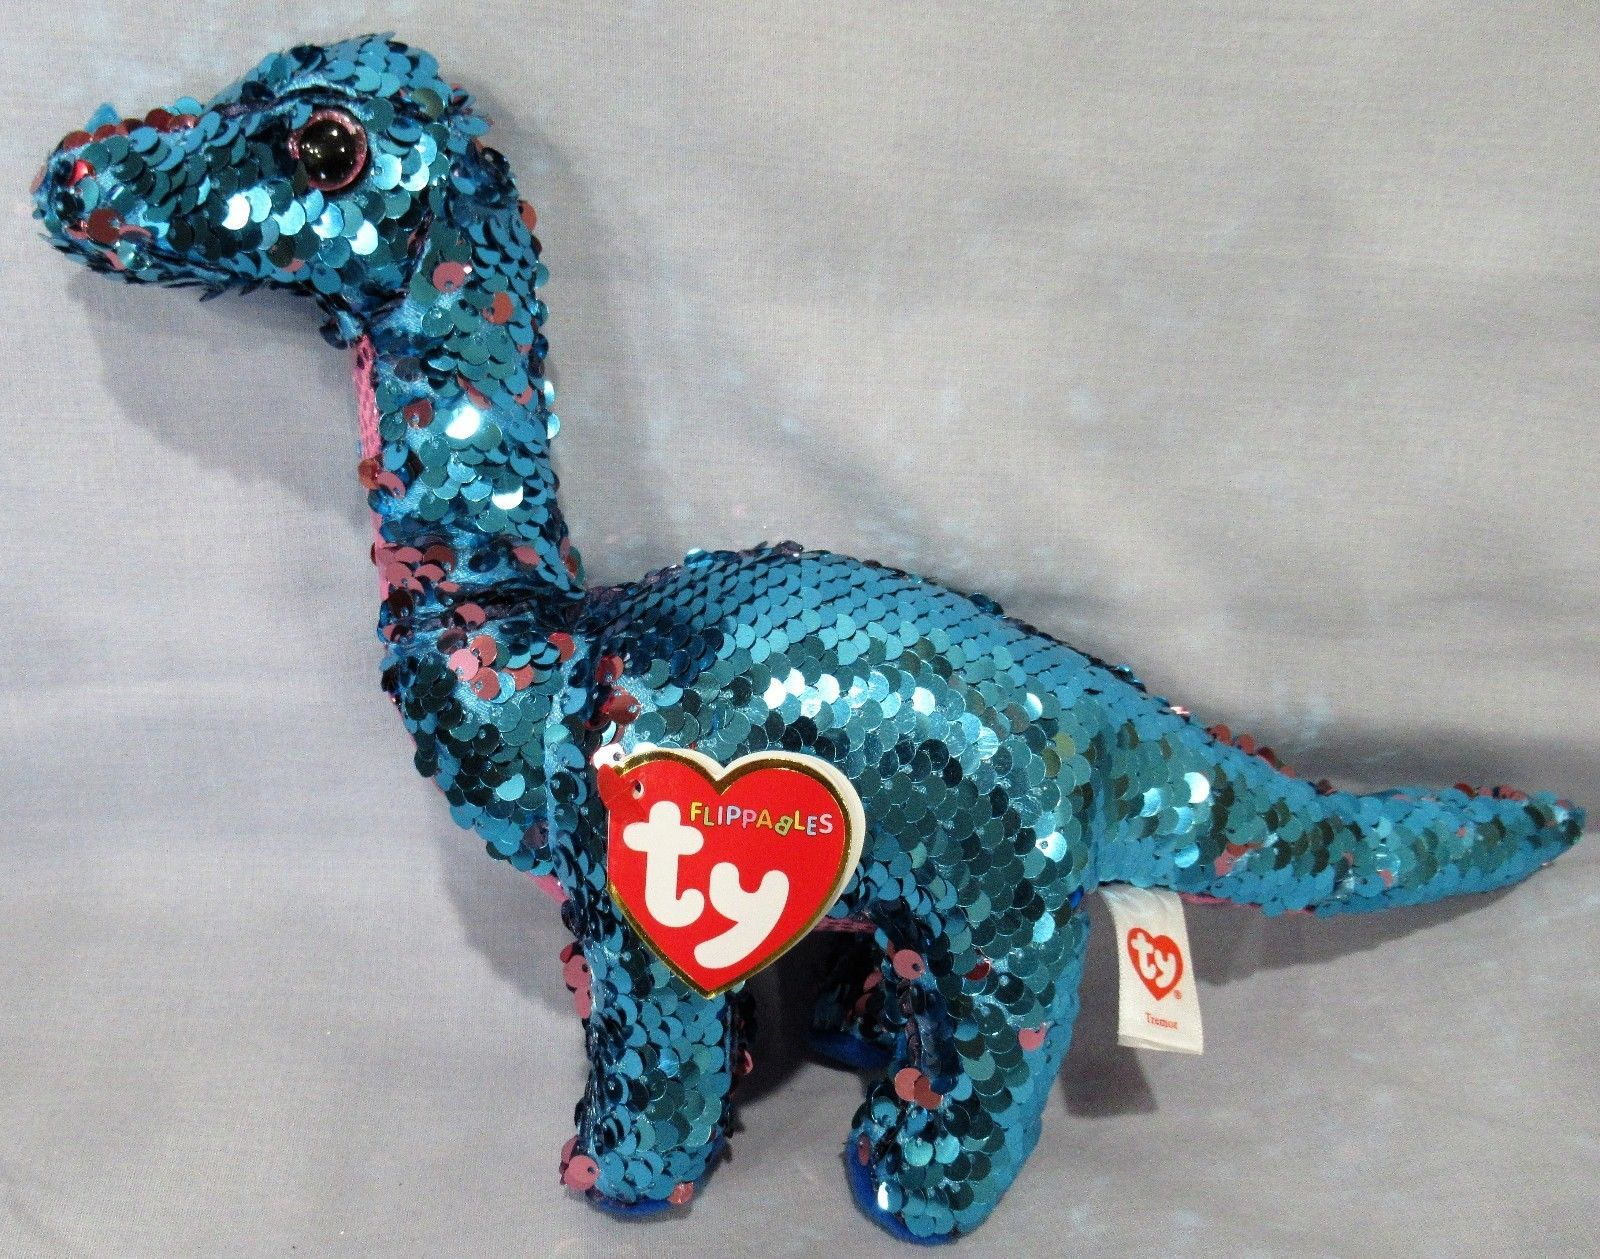 Current 438  Tremor - Dinosaur - Ty Flippables Sequin Beanie 6 Boos - New  With Mint Tags -  BUY IT NOW ONLY   19.5 on  eBay  current  tremor   dinosaur ... 6db415e508b8